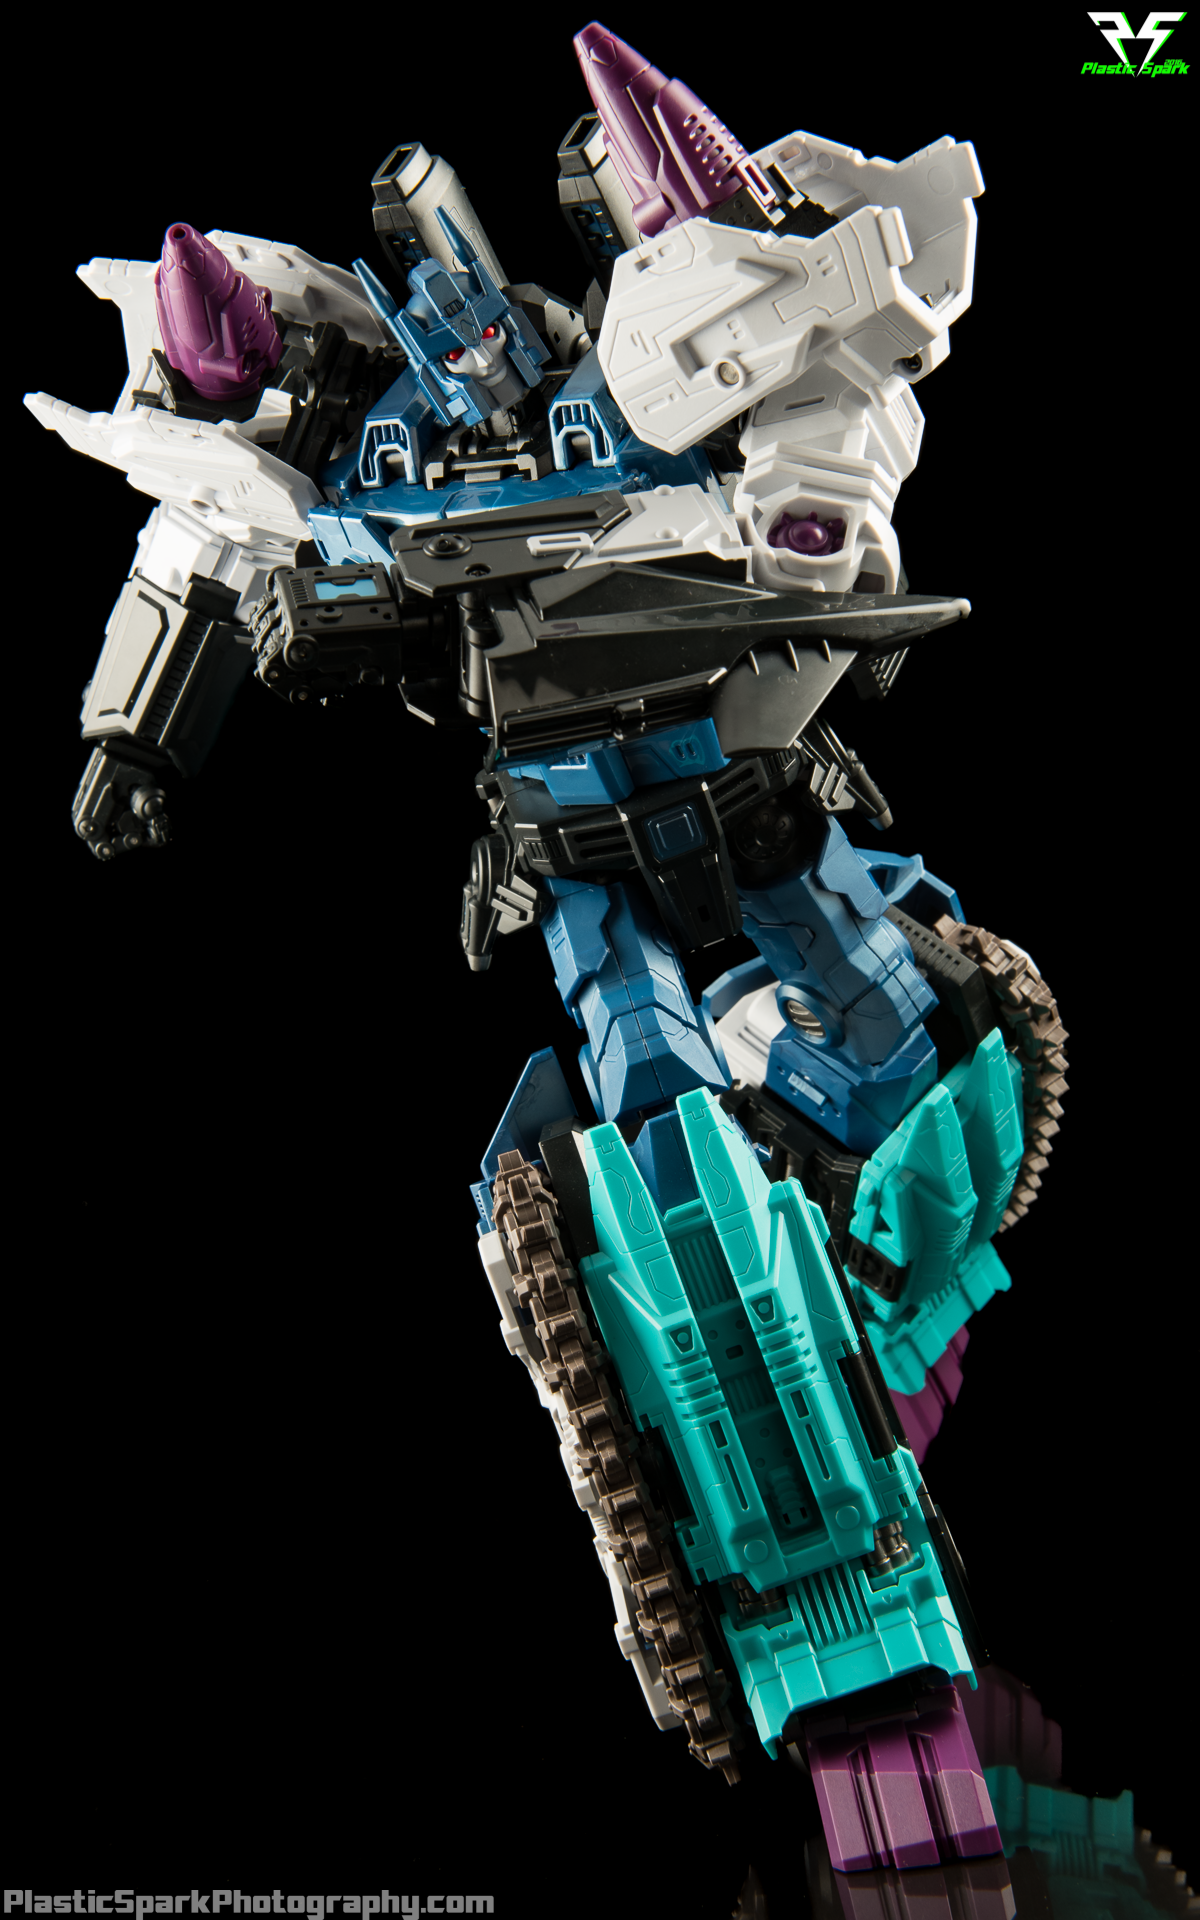 Mastemind-Creations-R17-Carnifex-(37-of-54).png